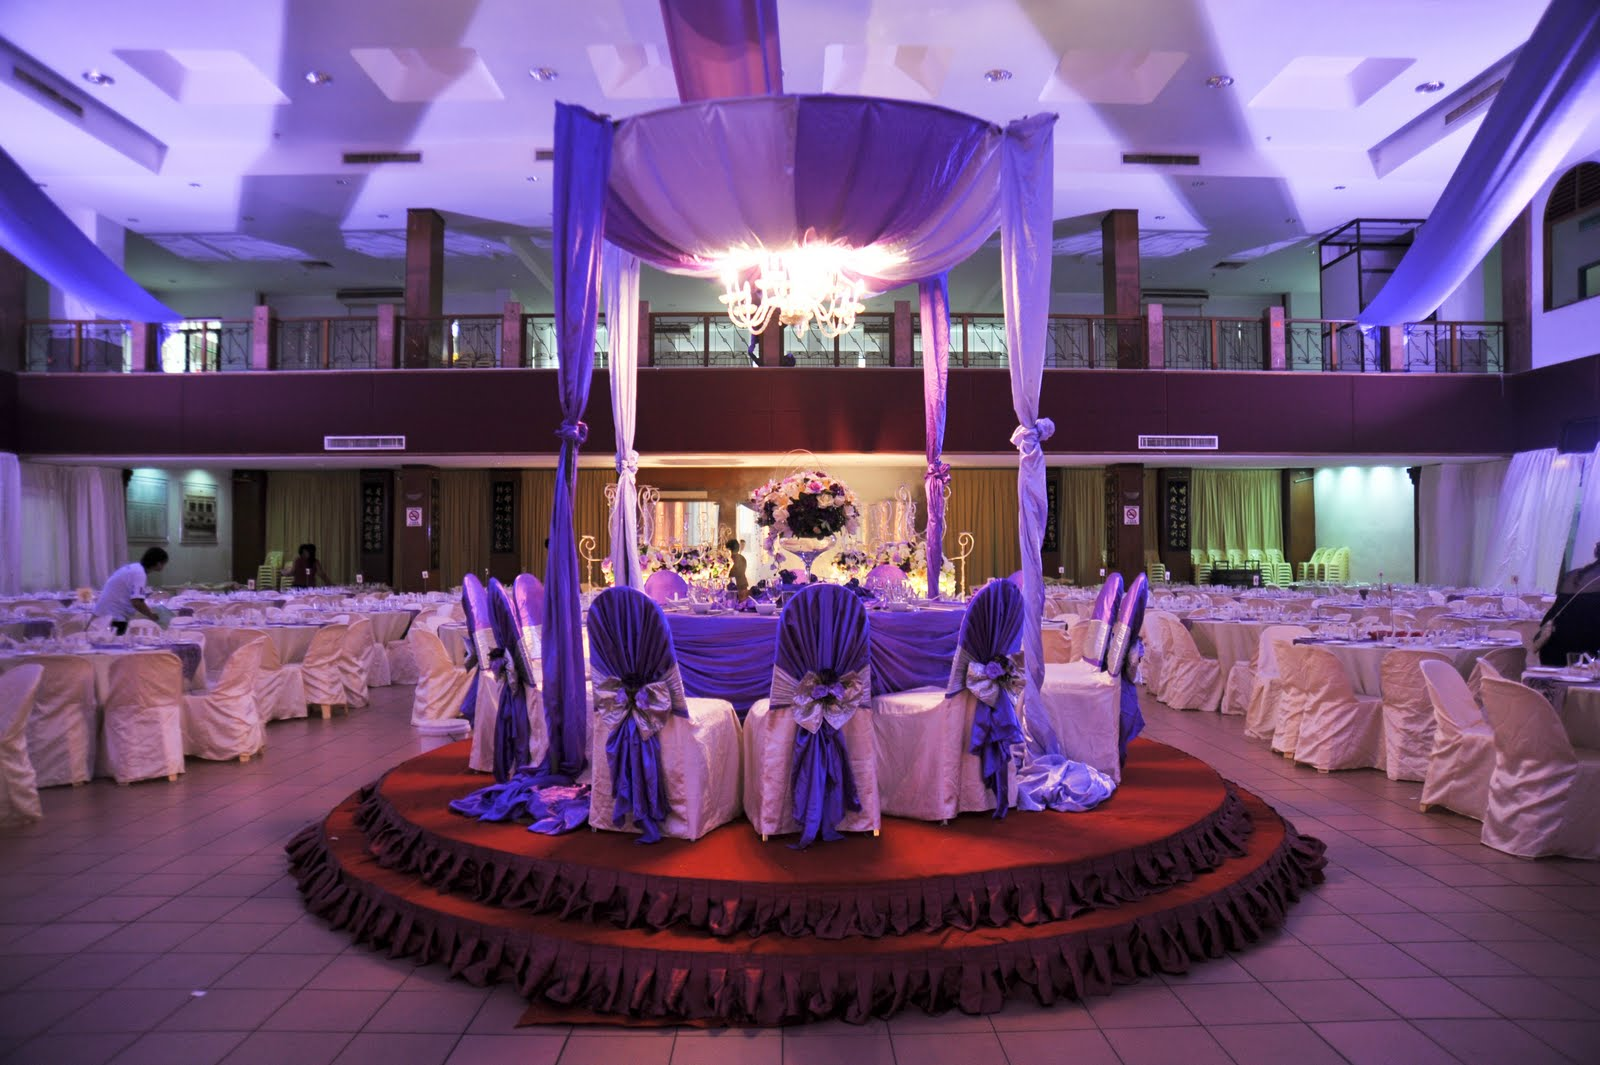 Dquest ventures wedding company dinner venue for Wedding venue decoration ideas pictures